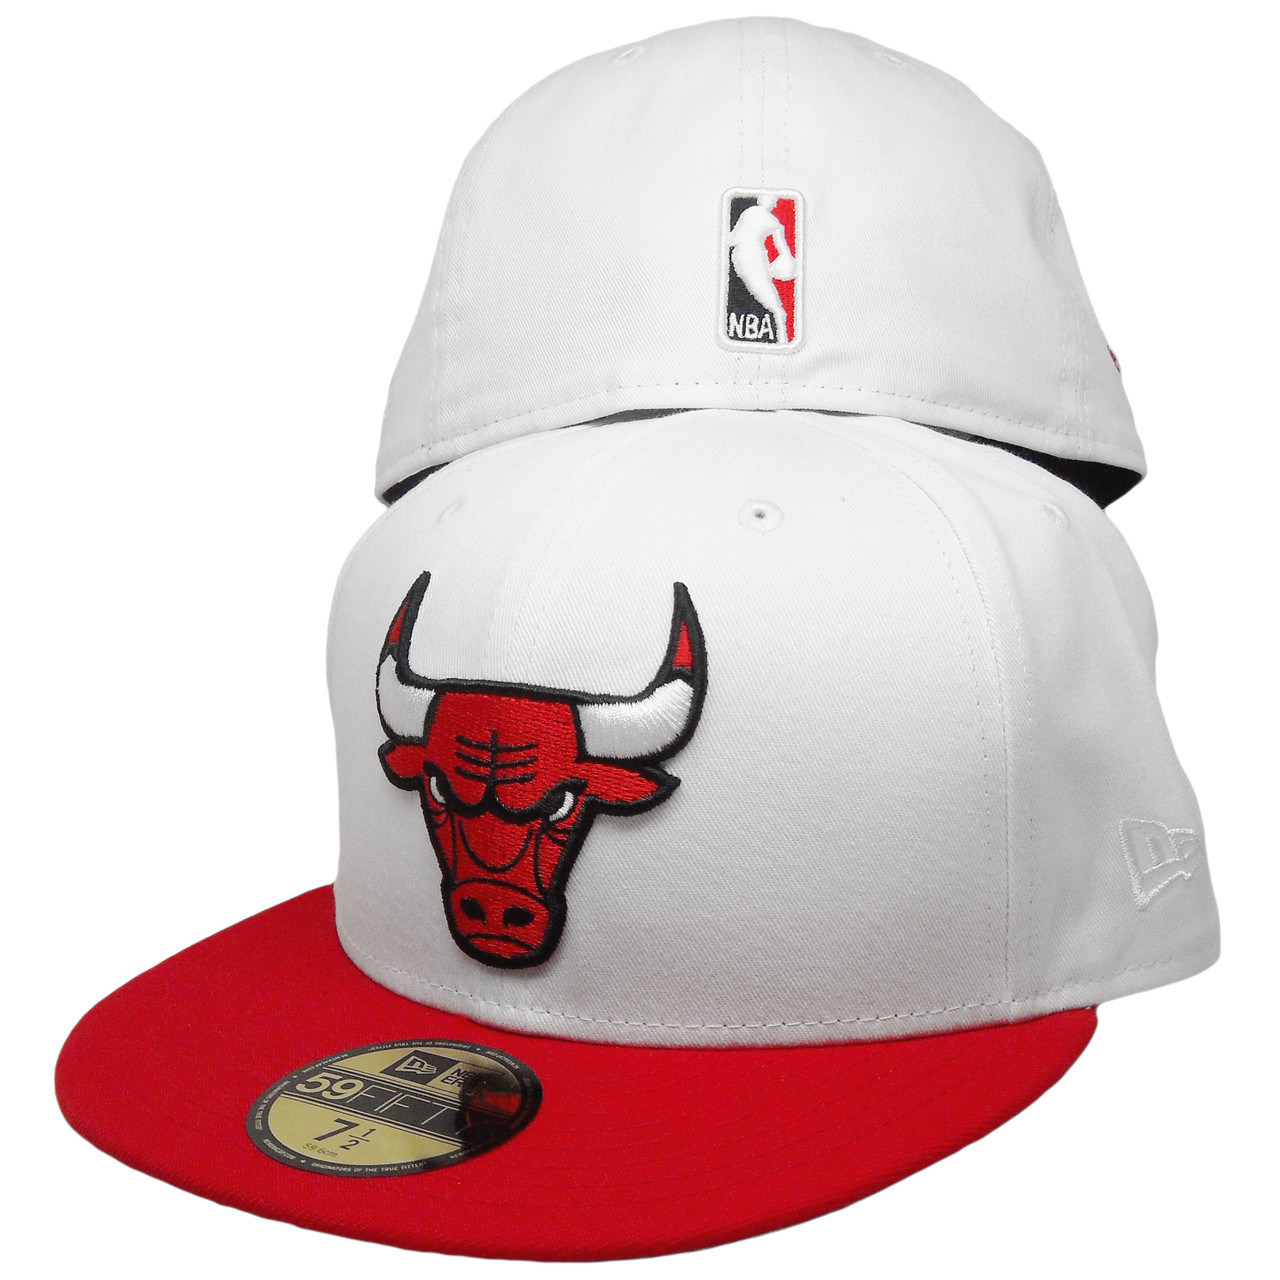 6357a2b806c Chicago Bulls Championship Patch New Era Custom 59Fifty Fitted - White